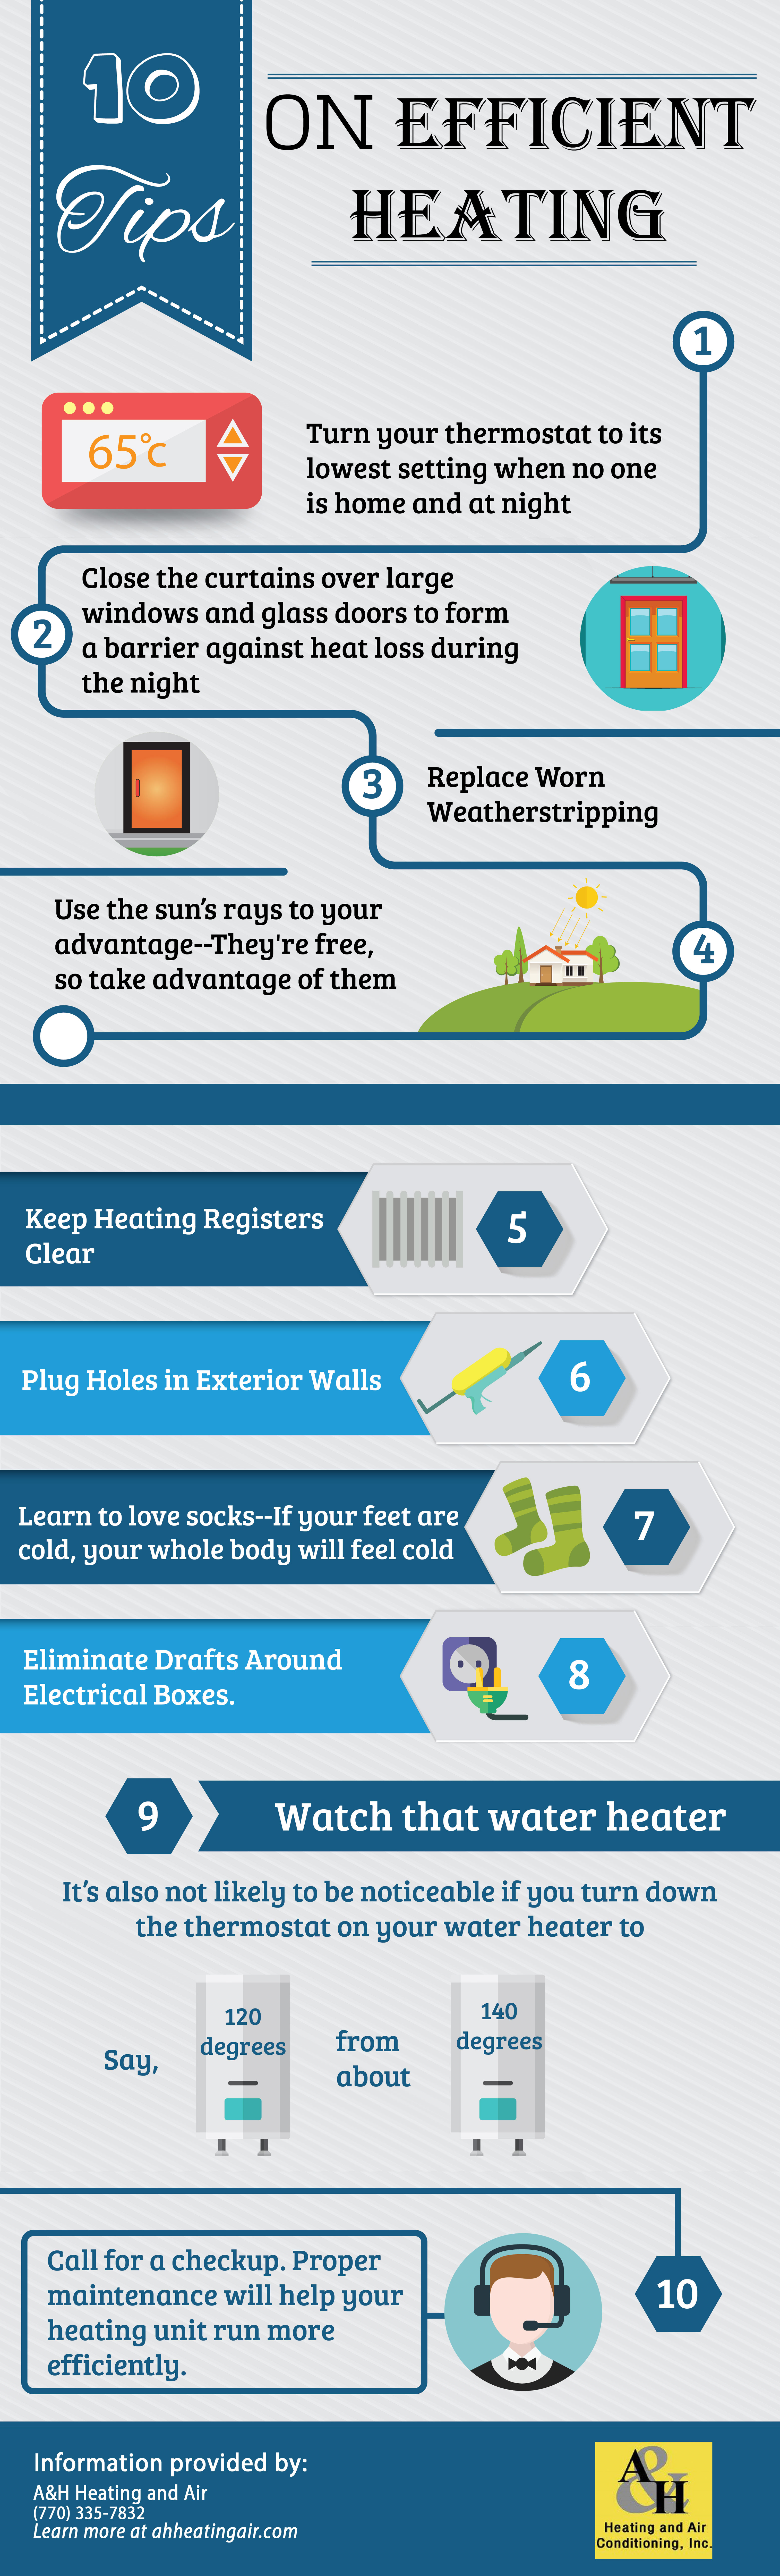 tips-on-efficient-heating